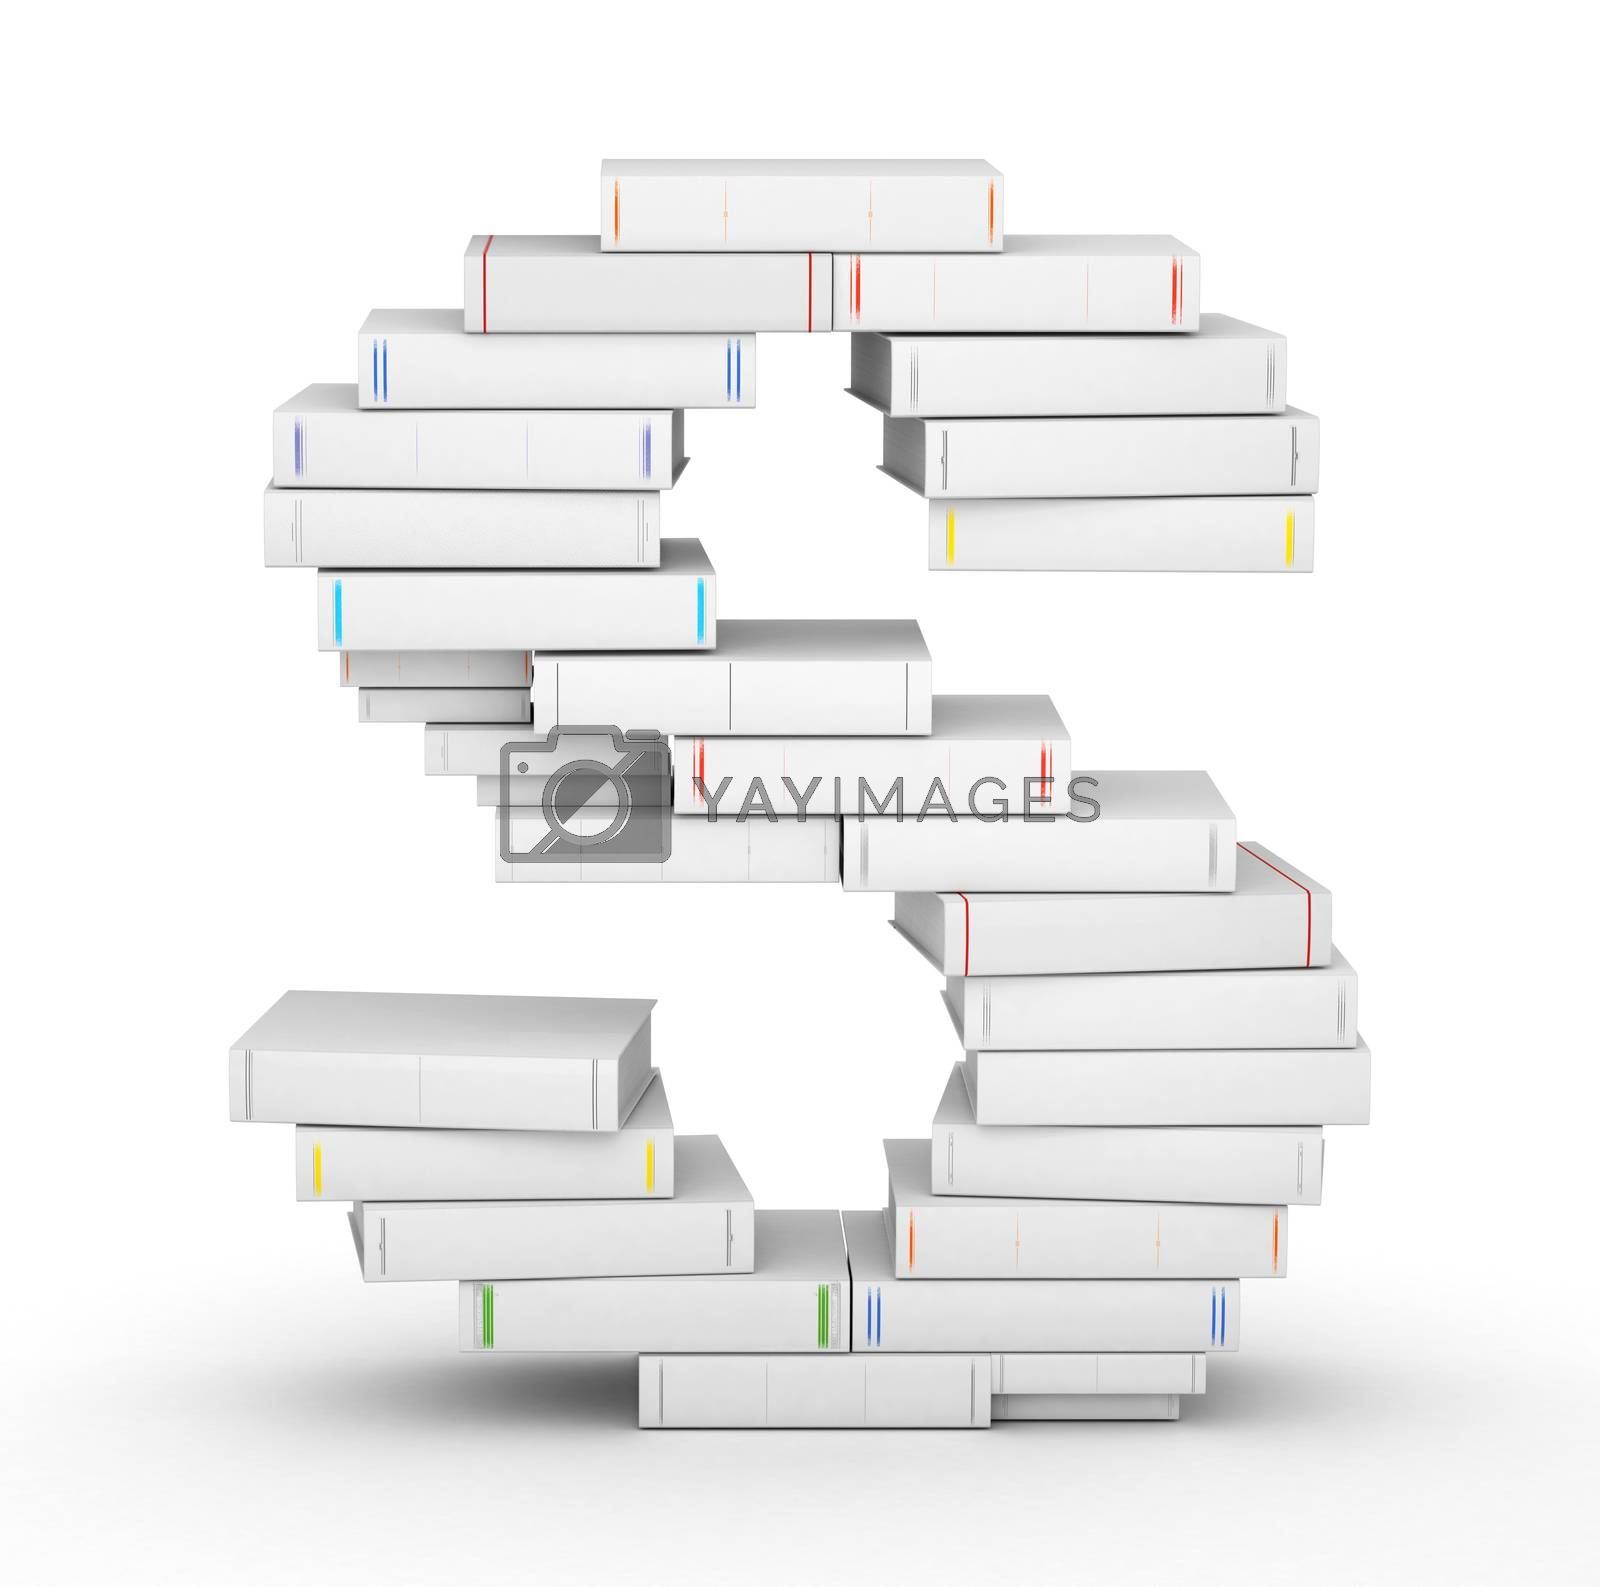 Royalty free image of Letter S, stacked from blank books by iunewind